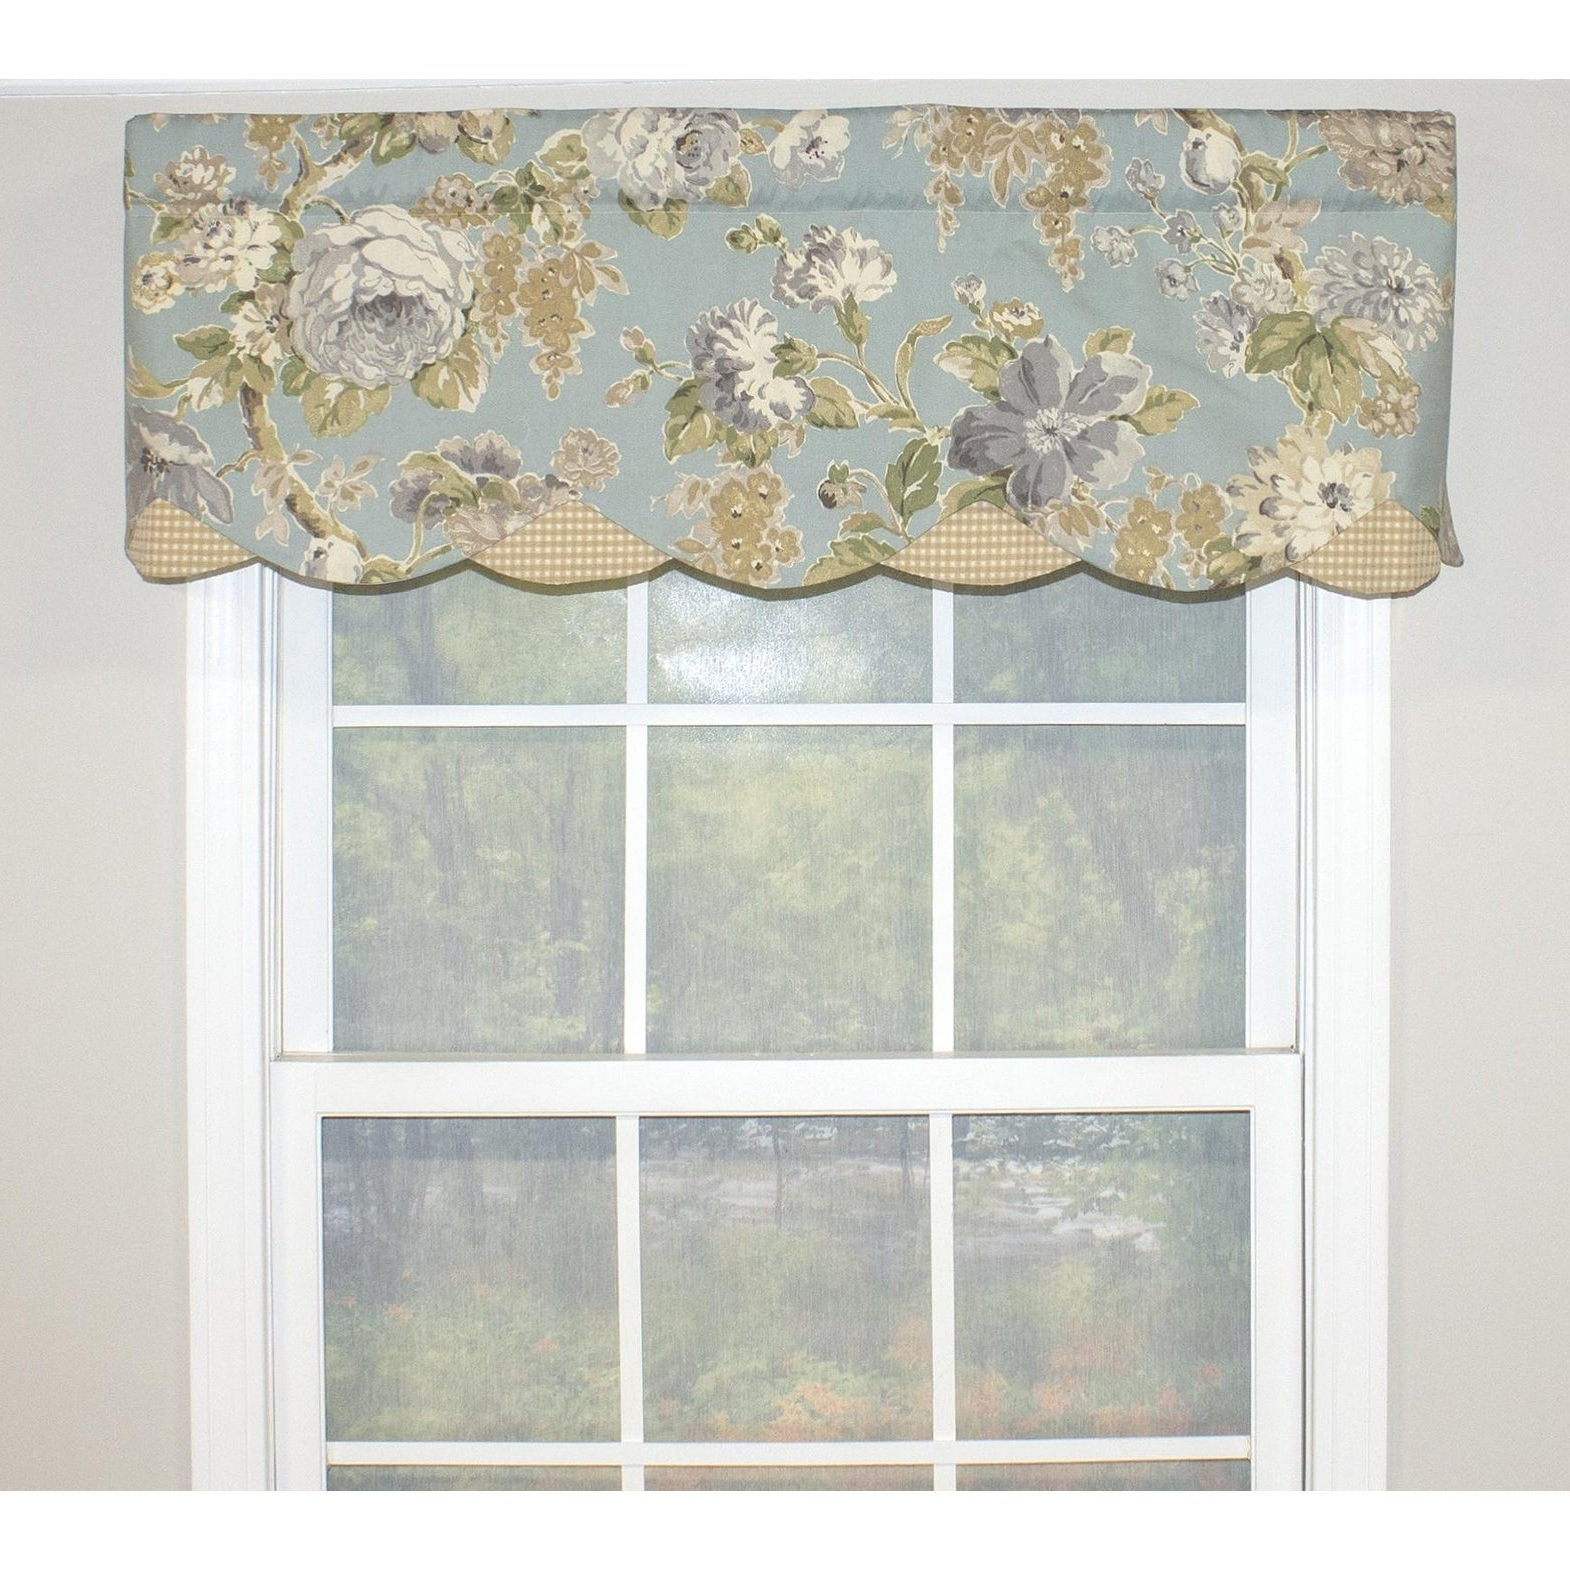 "Rlf Home Floral Bouquet Petticoat 50"" Window Valance With Preferred Floral Pattern Window Valances (View 19 of 20)"